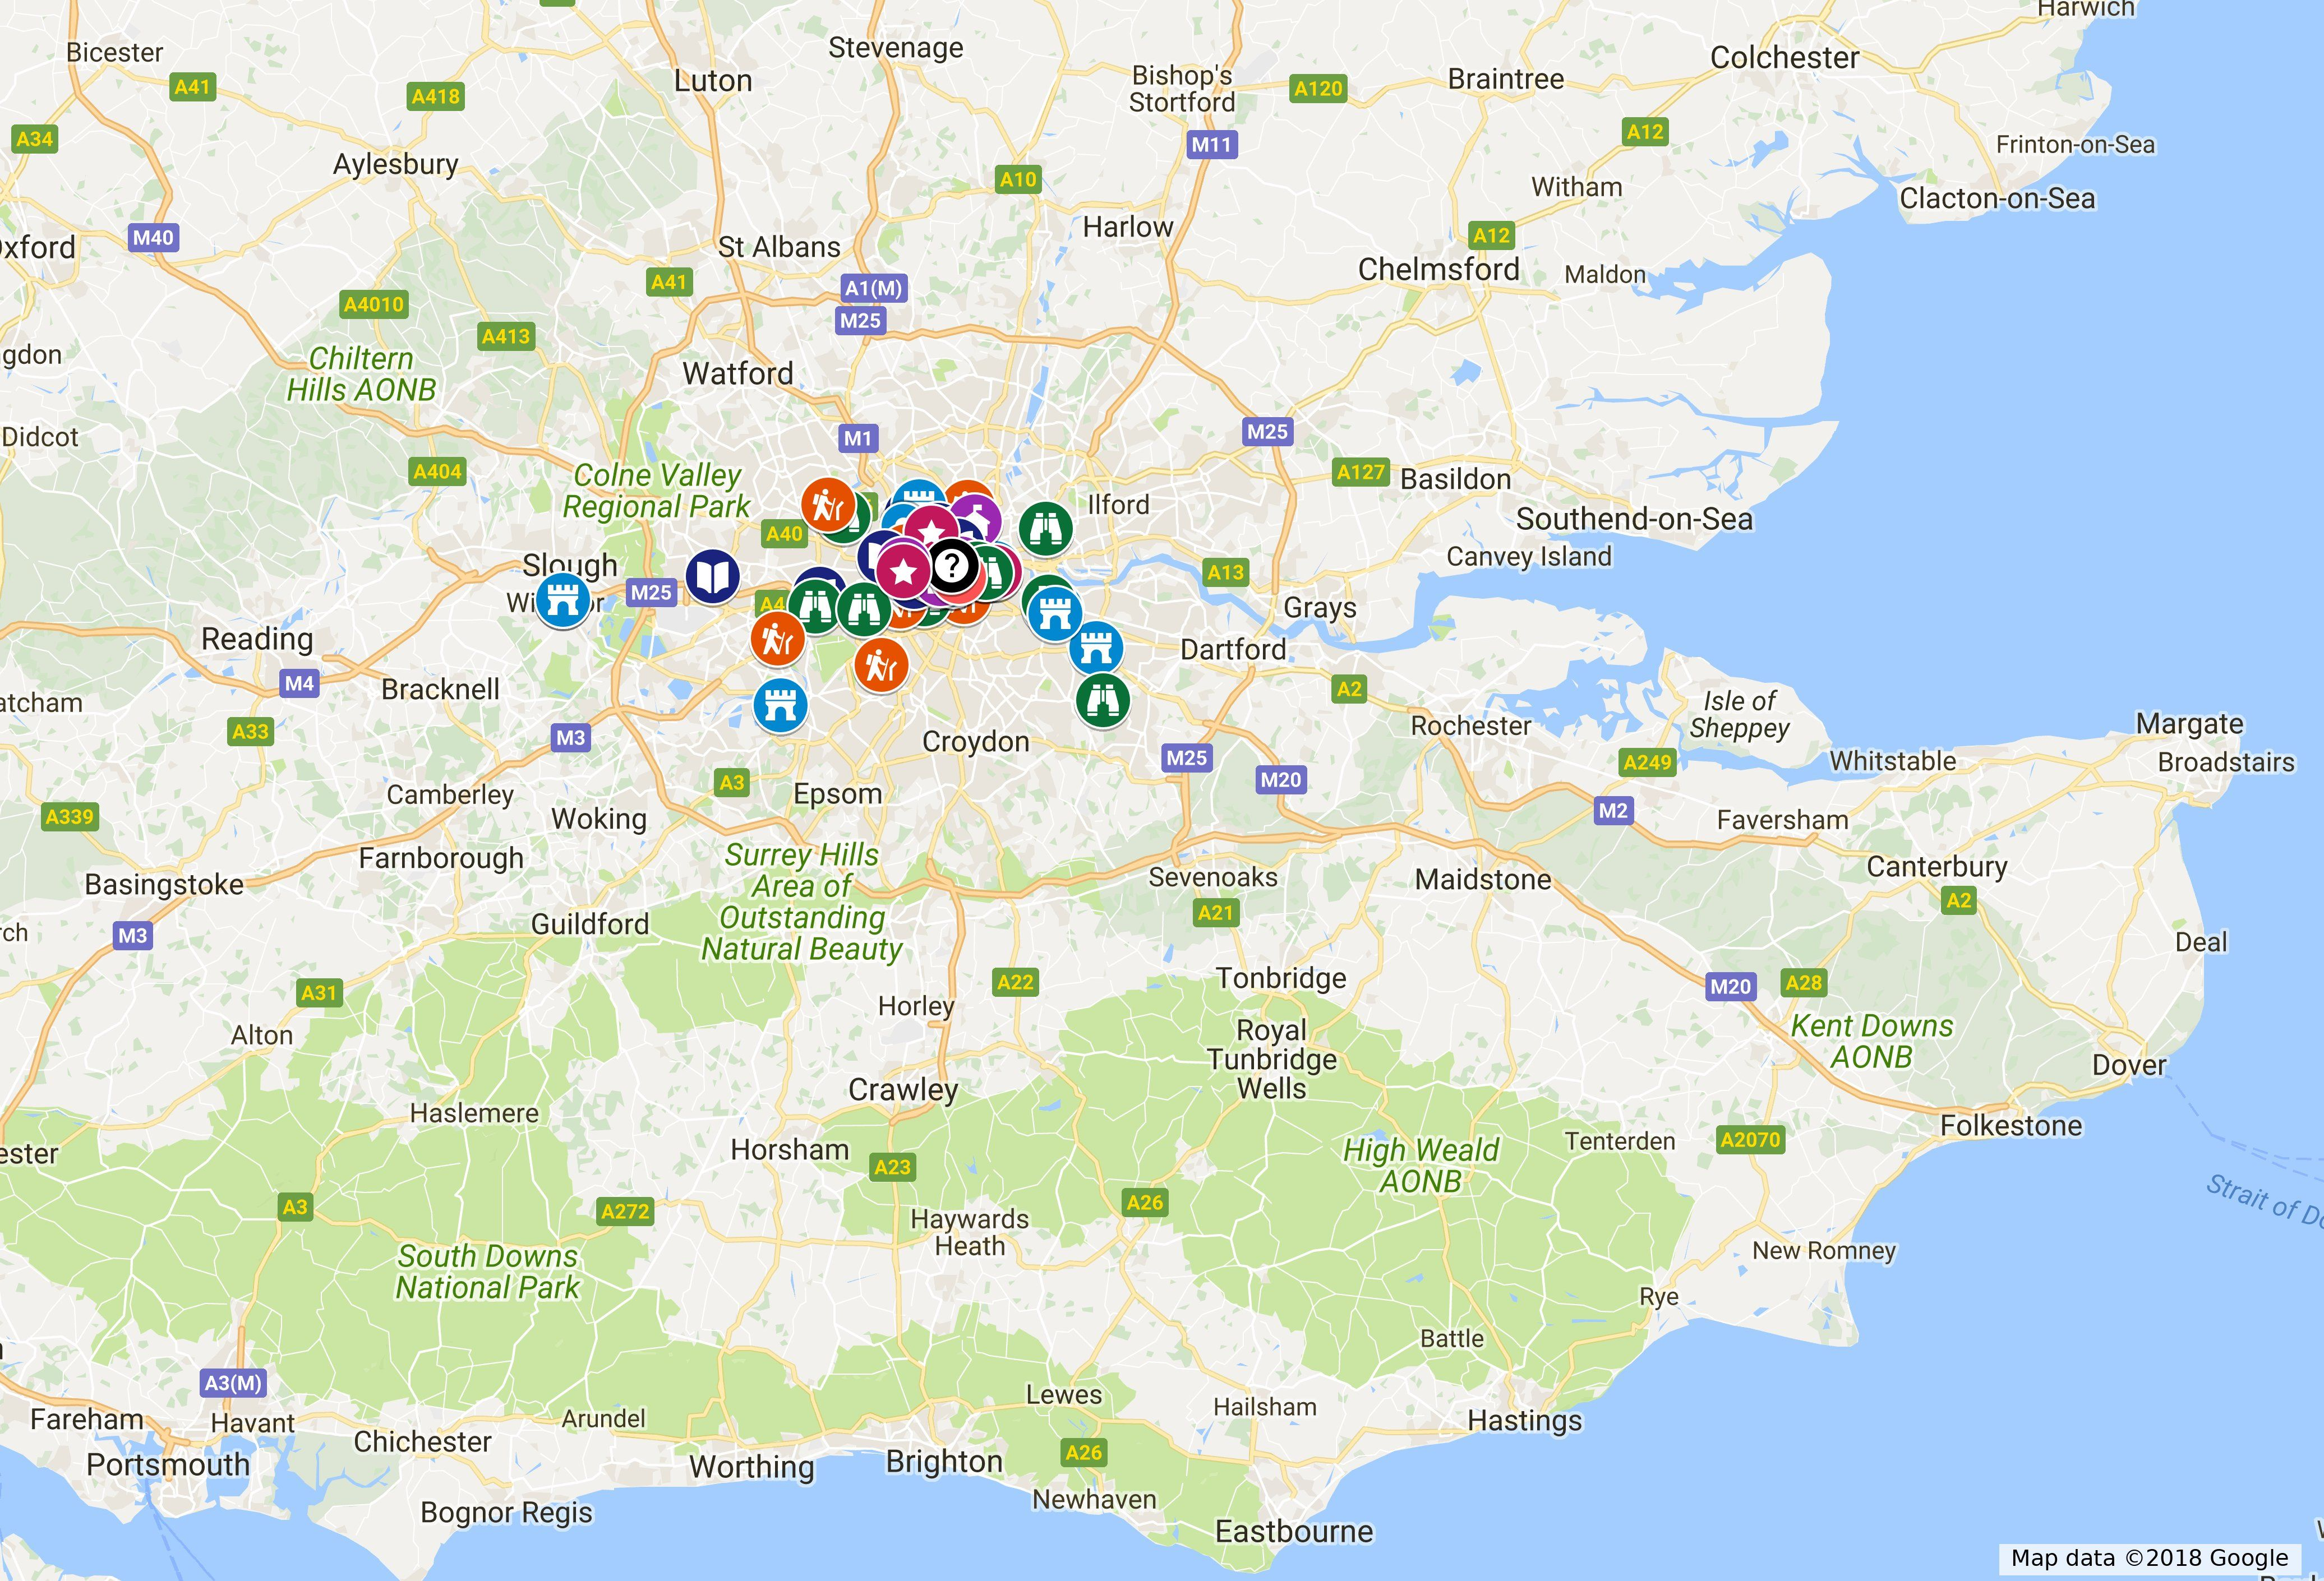 London Pass Attractions Map.London Pass Attractions Map London Pass Attractions Map Map